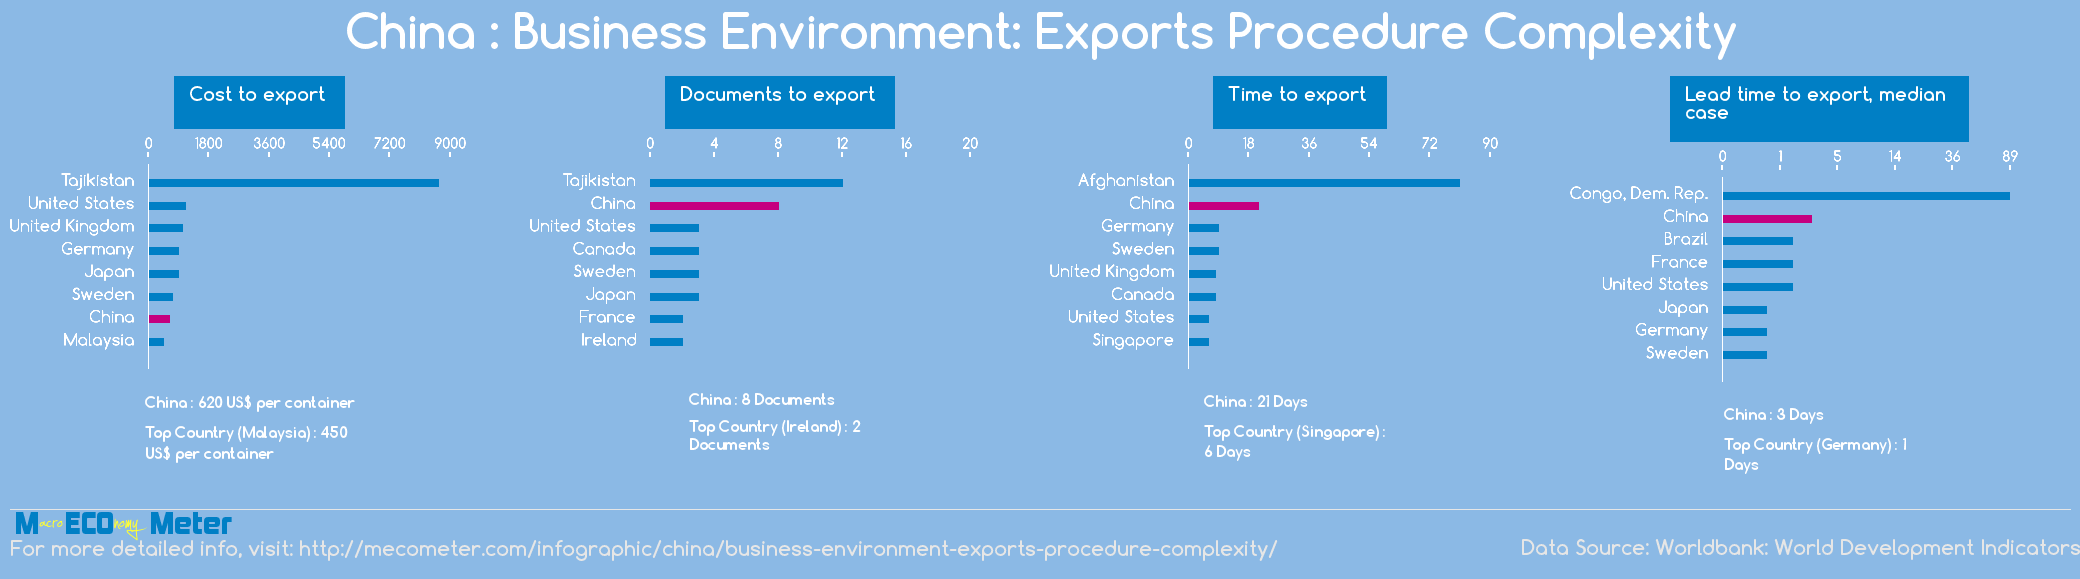 China : Business Environment: Exports Procedure Complexity